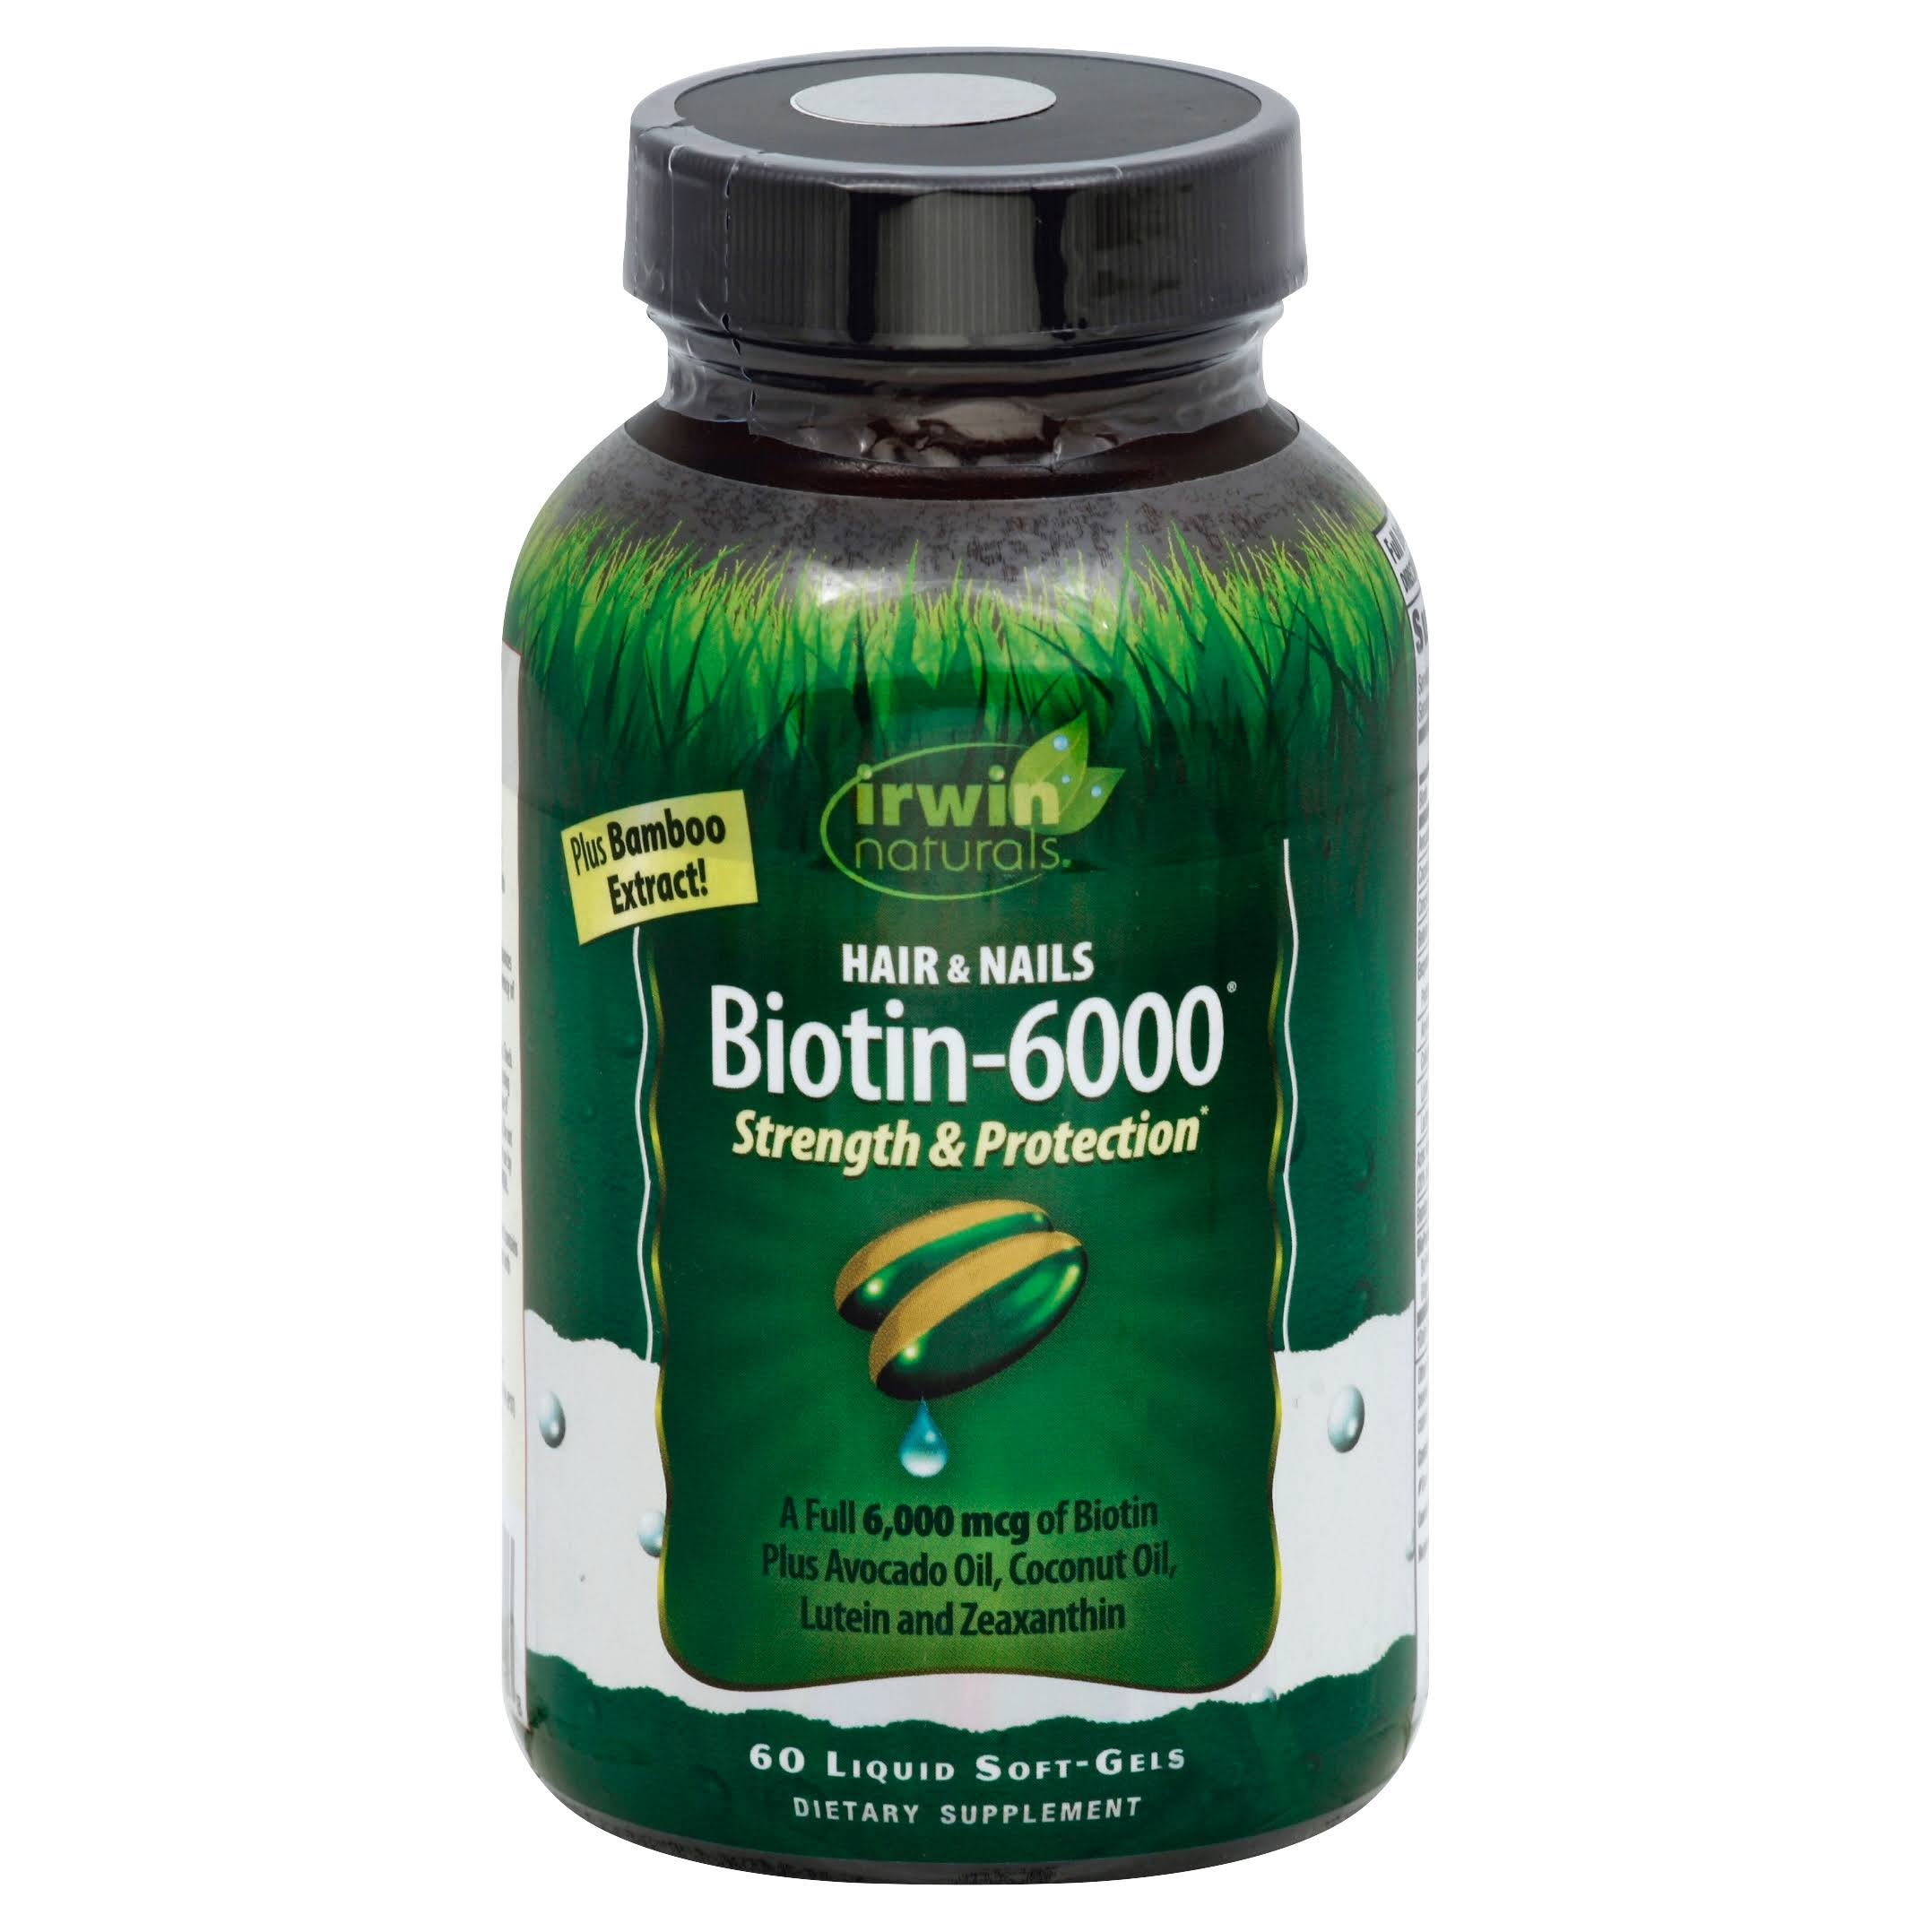 Irwin Naturals Biotin-6000 with Bamboo Extract Vitamins - 60 Softgels